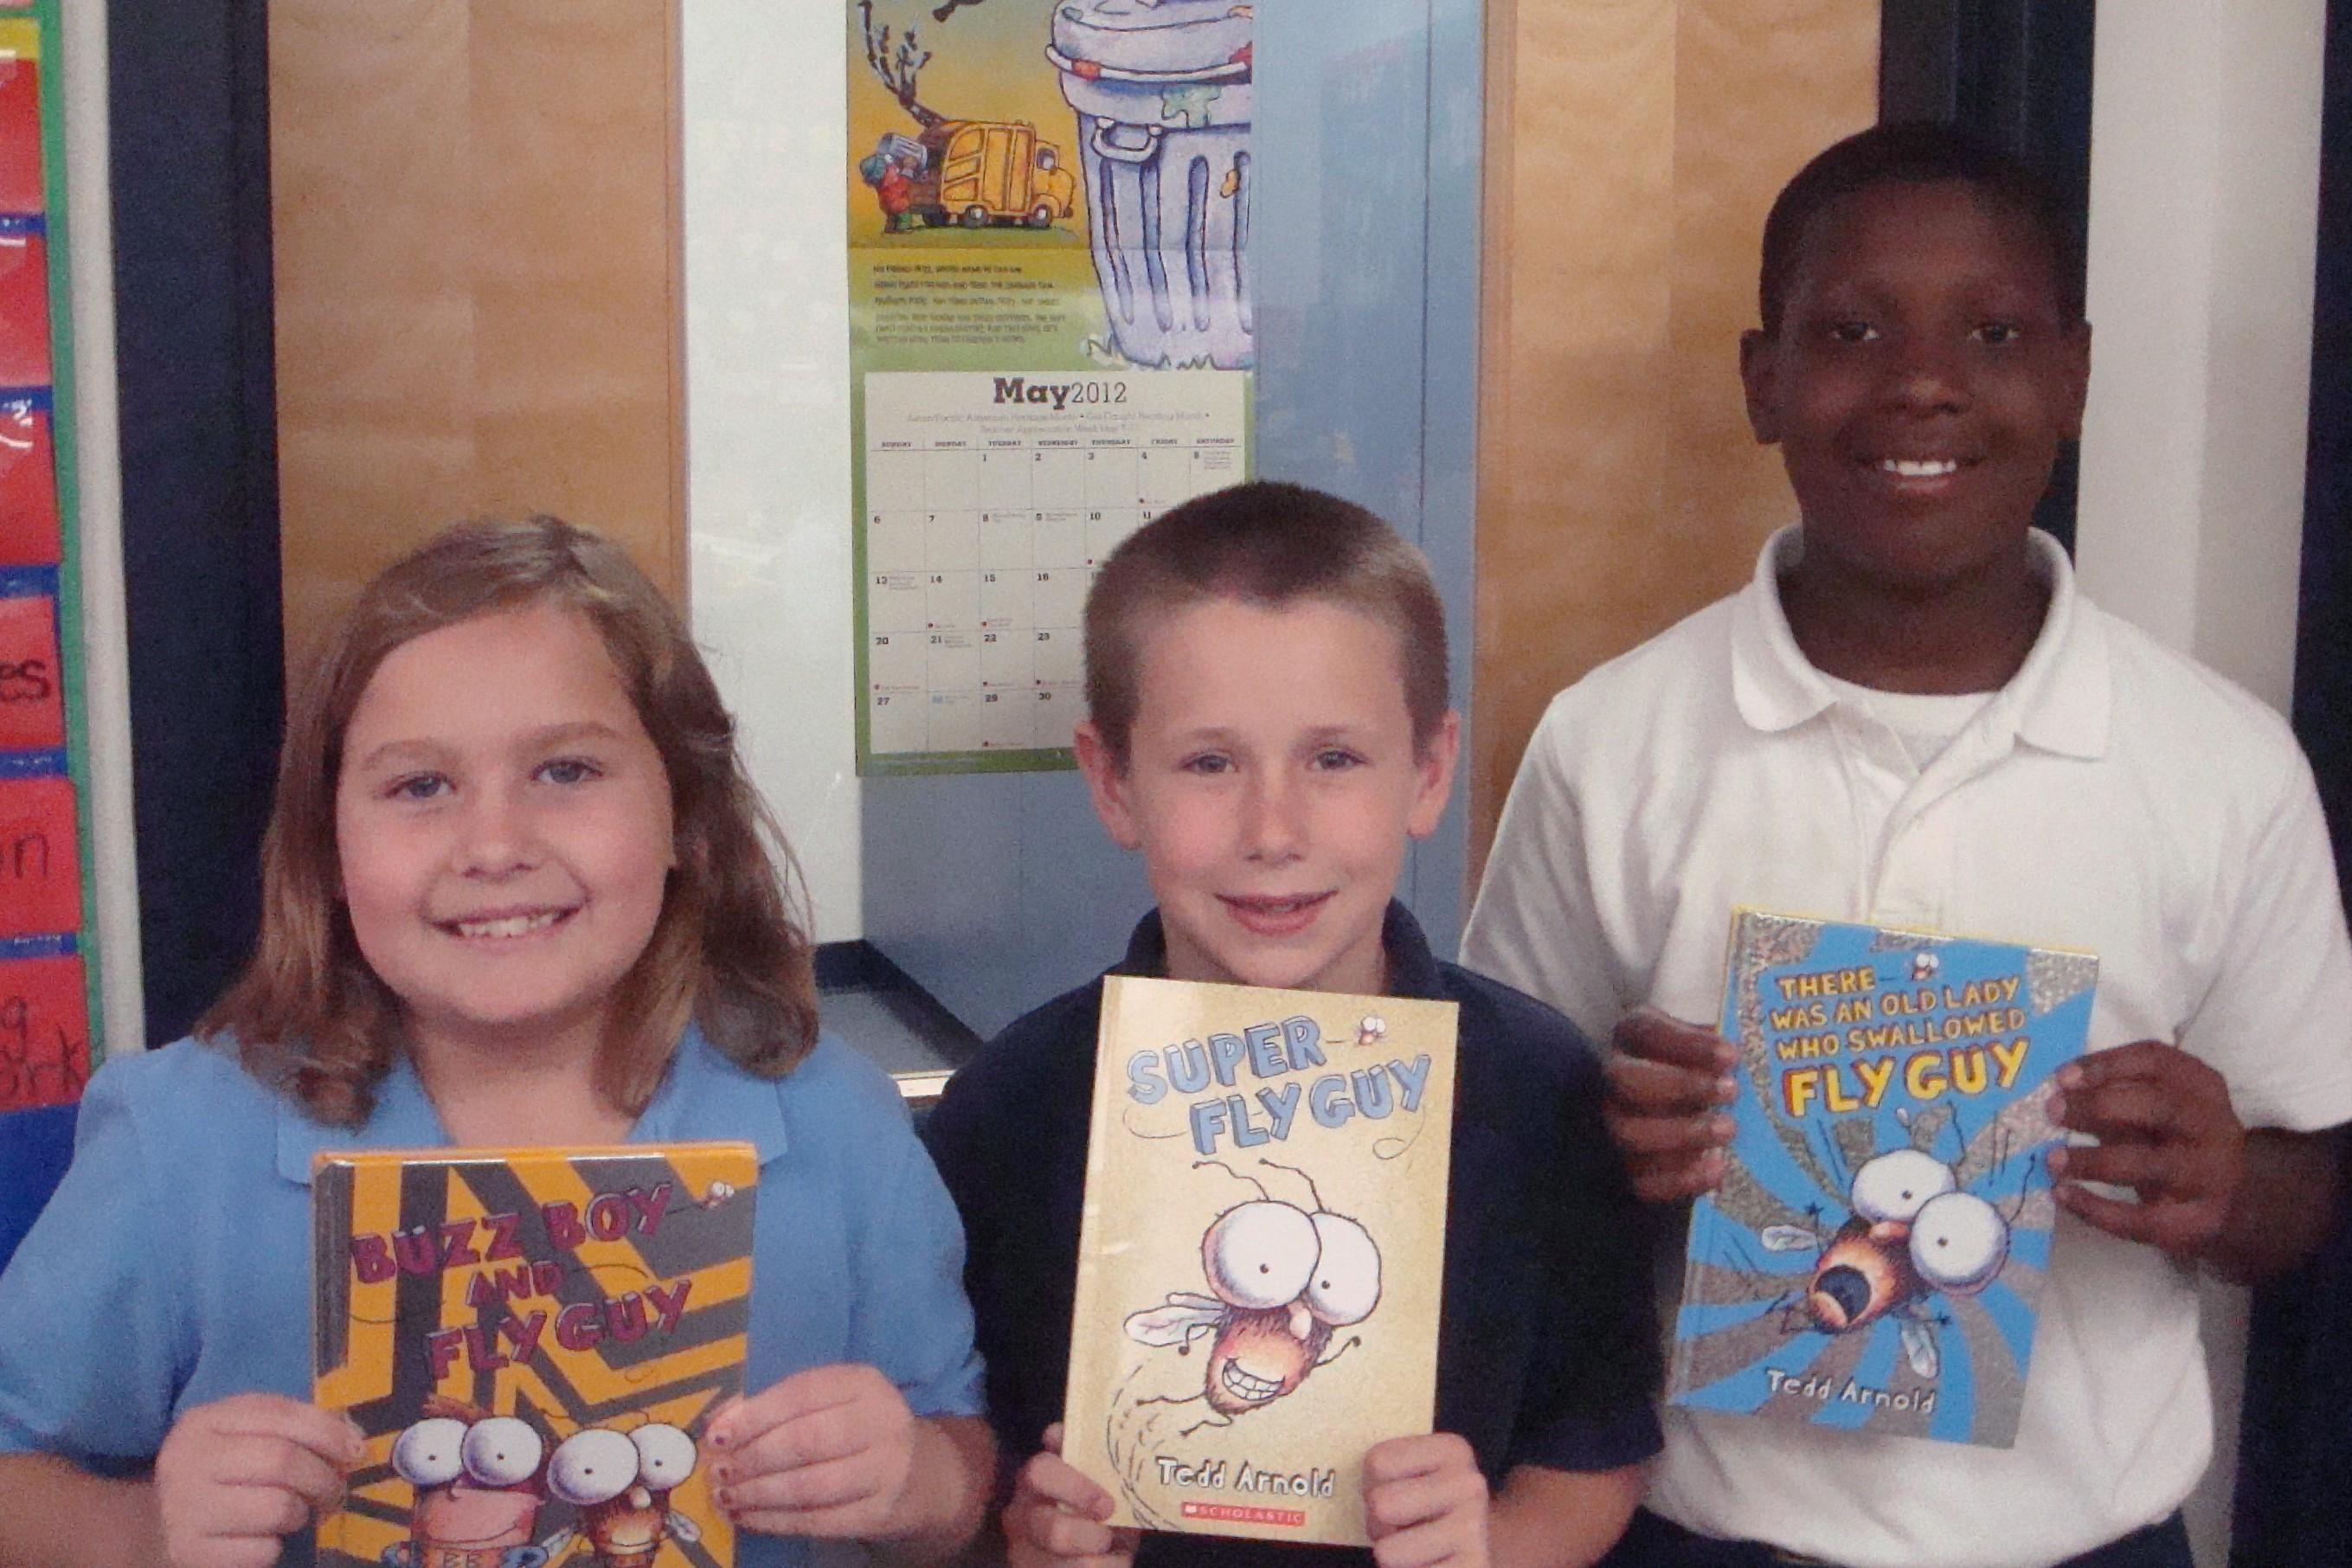 Third graders' favorite book features unsavory character